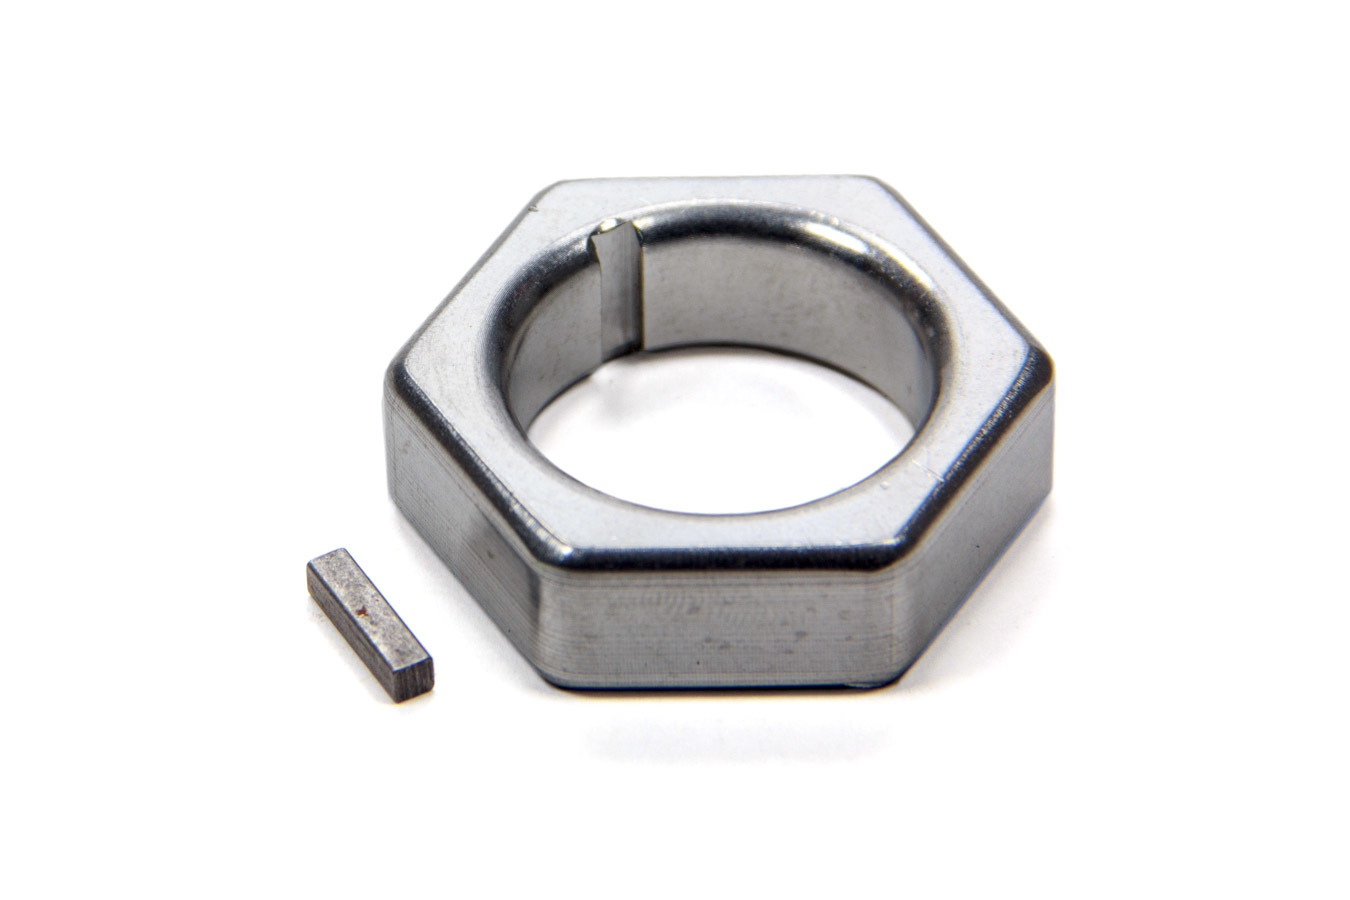 Jones Racing Products CSN-6103-A Mandrel Nut, 1-1/8 in Mandrel, 1/8 in Keyway, Aluminum, Clear Anodized, Each